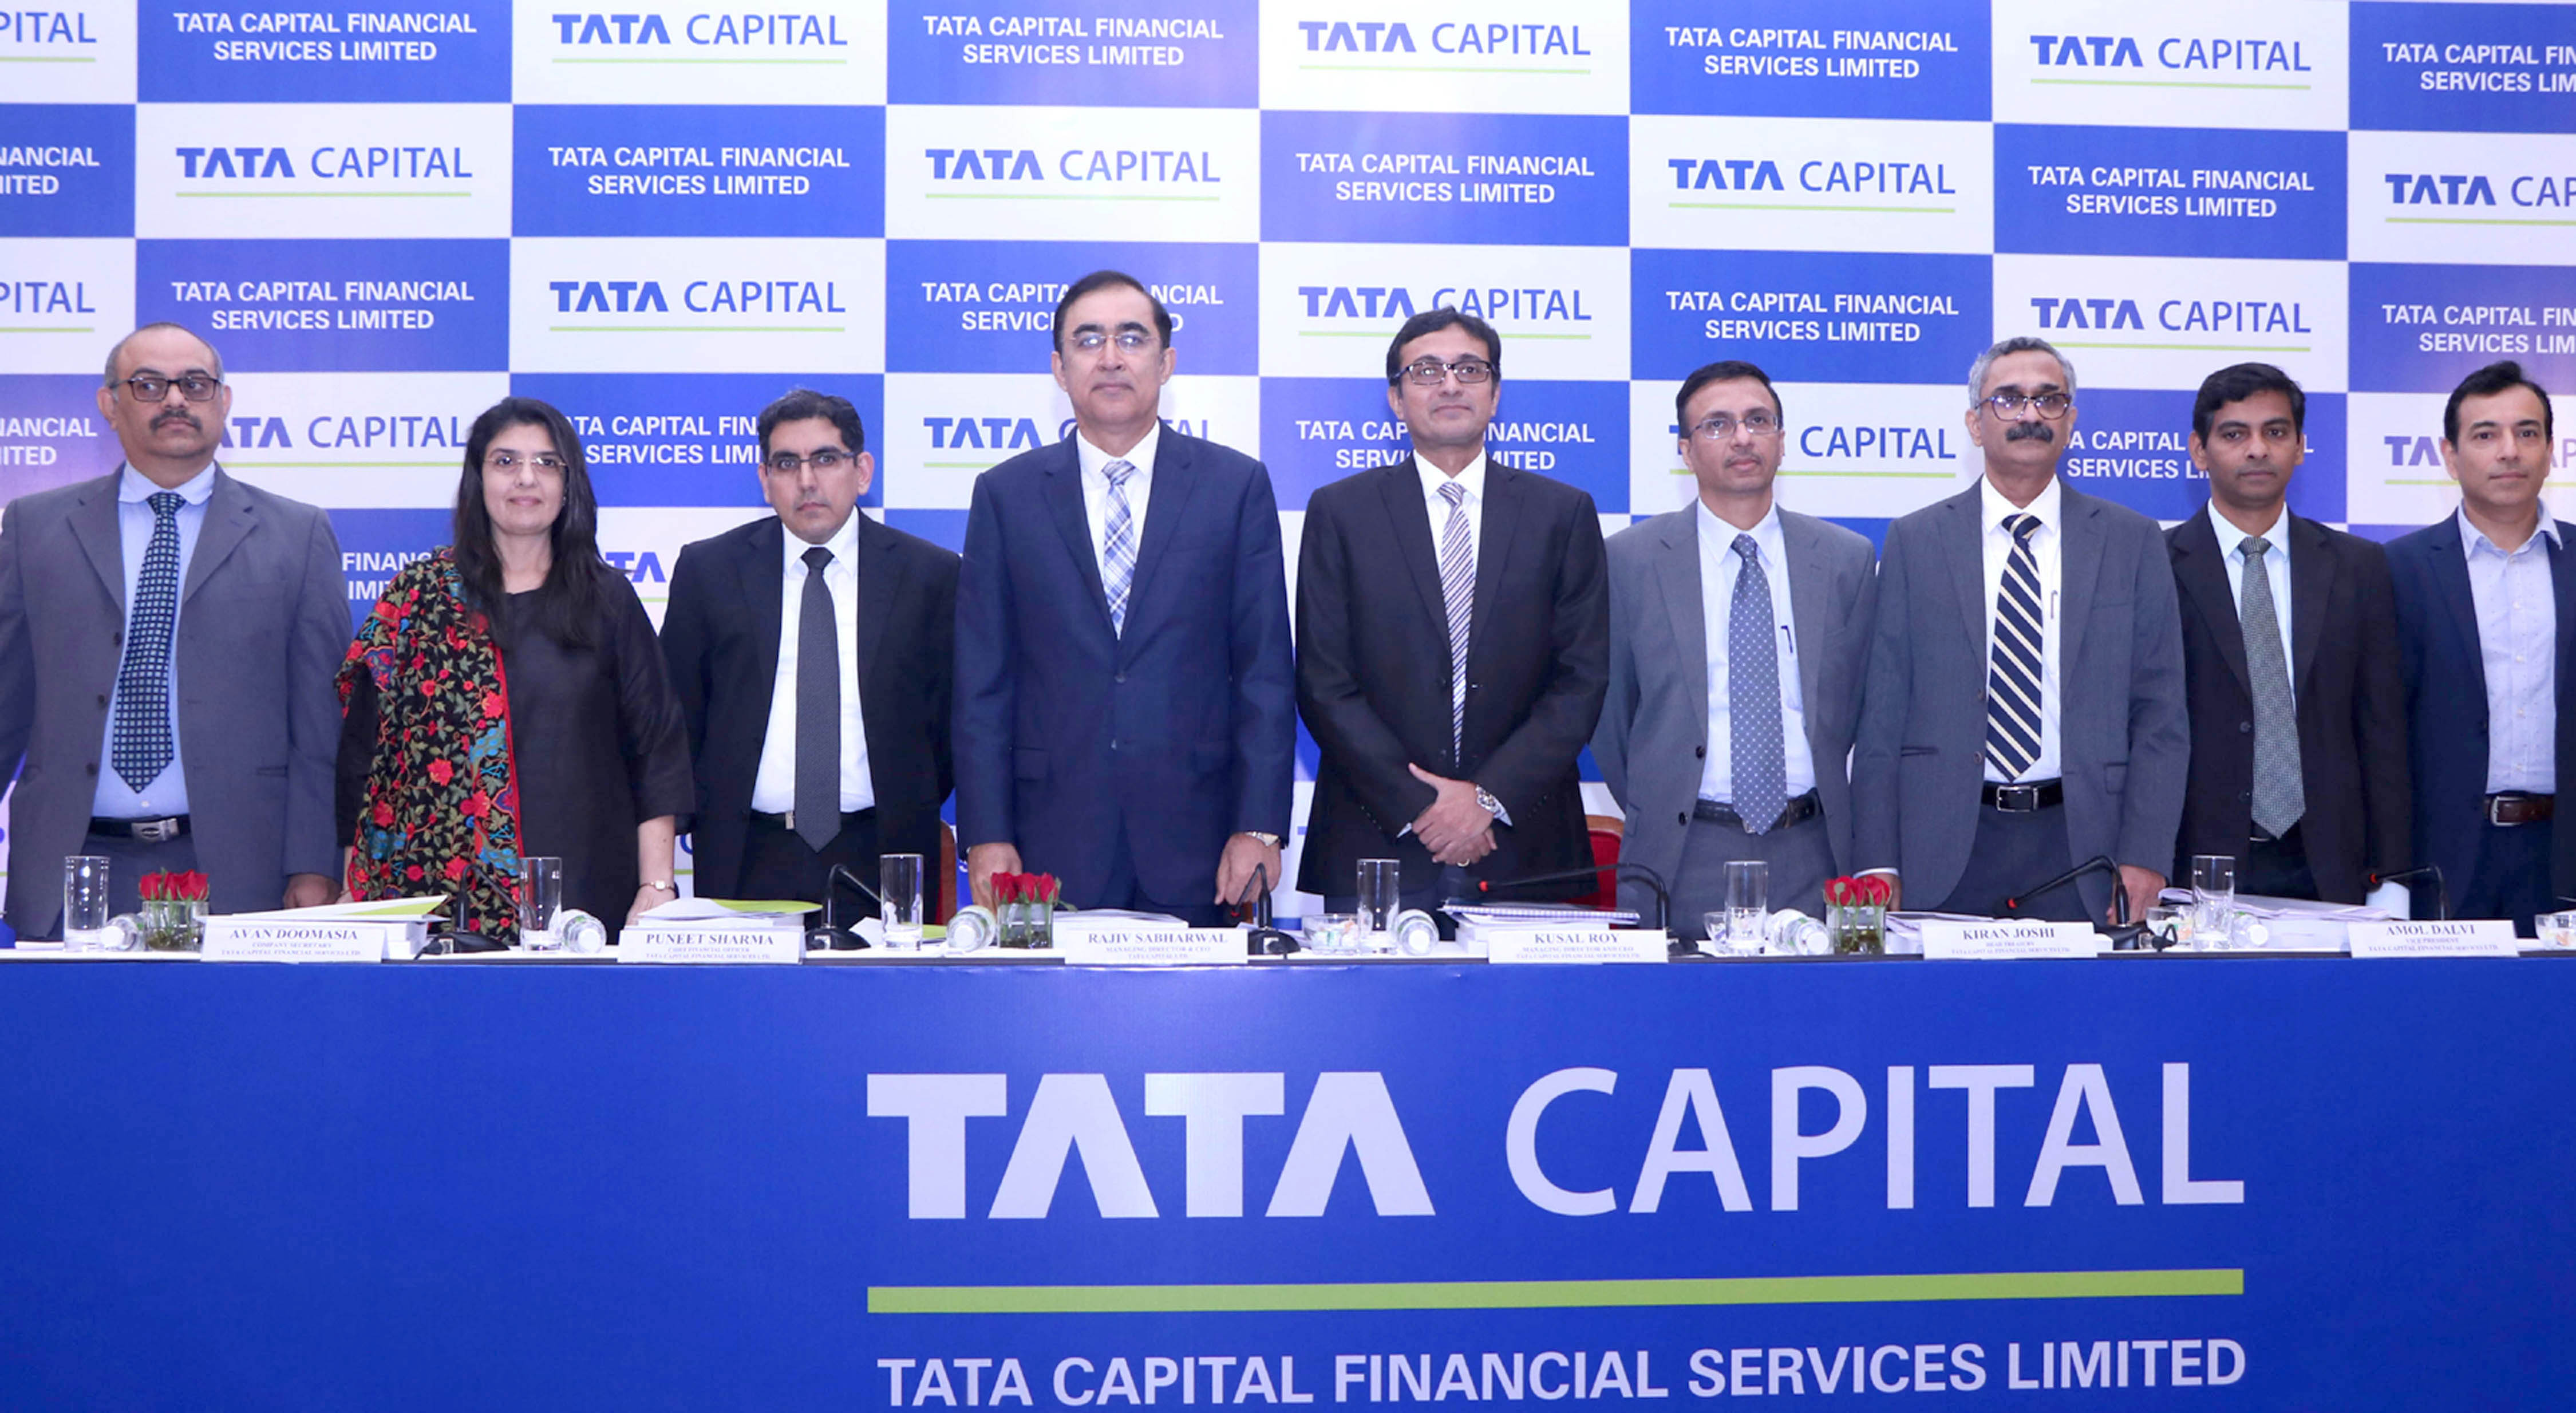 (L-R) Vinay Pai (Edelweiss Financial Services Limited), Avan Doomasia (Company Secretary, Tata Capital Financial Services Ltd.), Puneet Sharma (Chief Financial Officer, Tata Capital Financial Services Ltd.), Rajiv Sabharwal (Managing Director & CEO, Tata Capital Ltd.), Kusal Roy (Managing Director & CEO, Tata Capital Financial Services Ltd.), Kiran Joshi (Head Treasury, Tata Capital Financial Services Ltd.), Amol Dalvi (Vice President, Tata Capital Financial Services Ltd.), Vikas Shinde (Axis Bank Limited), Harit Oberoi (A.K. Capital Services Ltd.) at the announcement of Tata Capital Financial Services Limited NCD issue - Photo By Sachin Murdeshwar/GPN